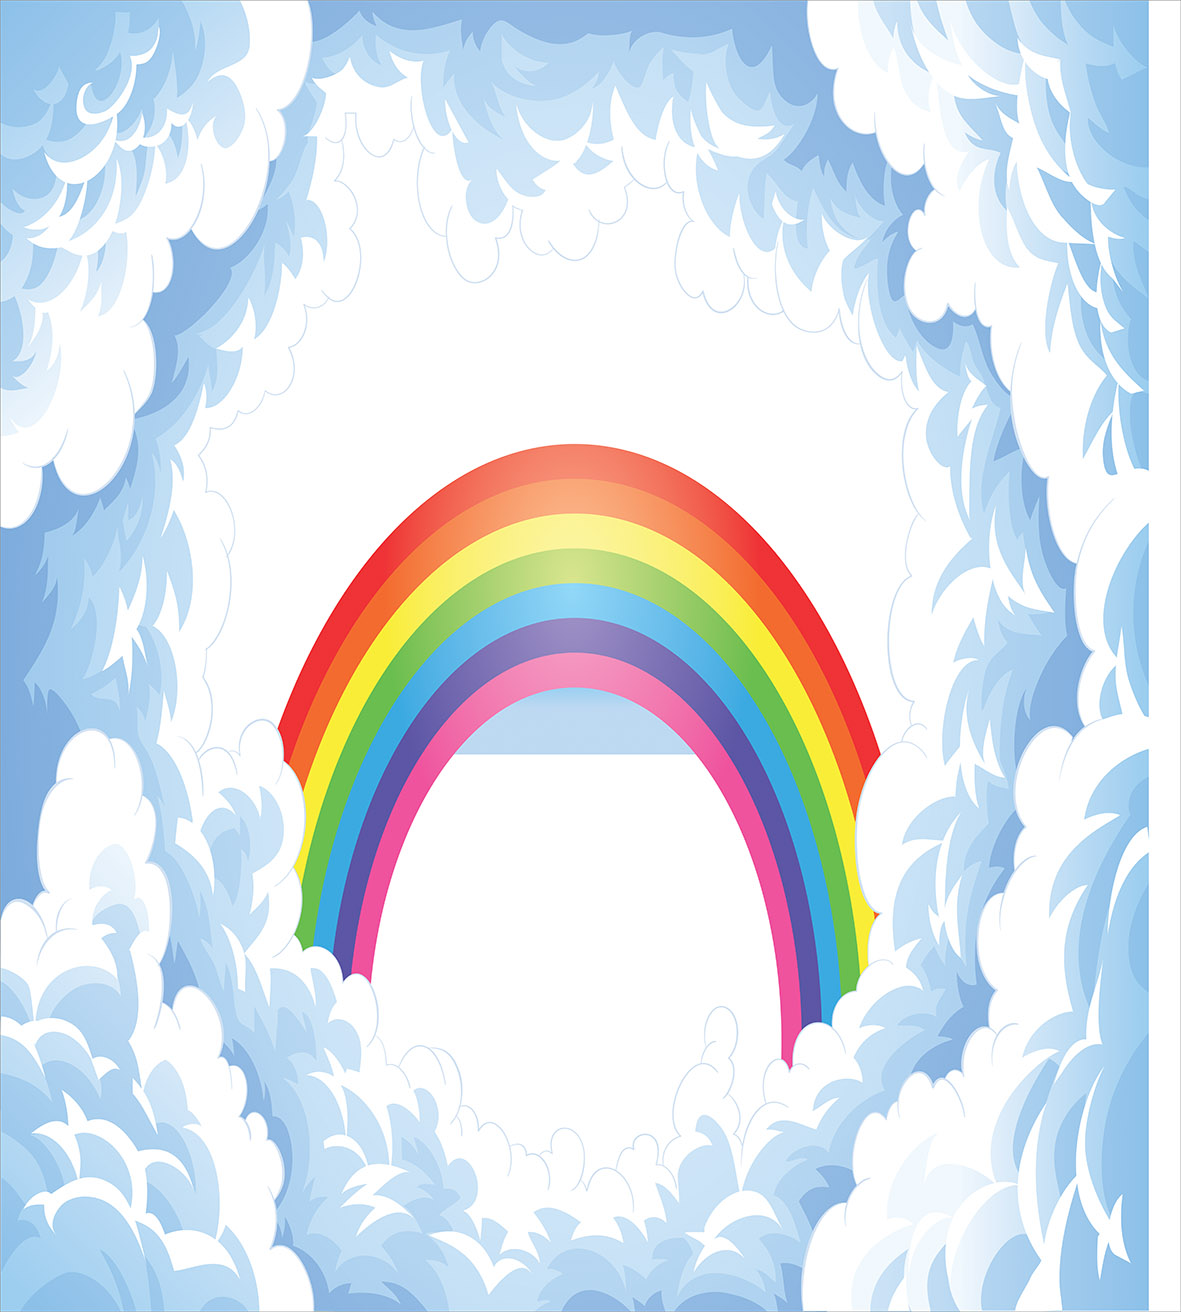 Cartoon Duvet Cover Set, Rainbow above Fluffy Cute Romantic Clouds for Kids Nursery Art, Decorative Bedding Set with Pillow Shams, Baby Blue White Red Yellow Pink, by Ambesonne